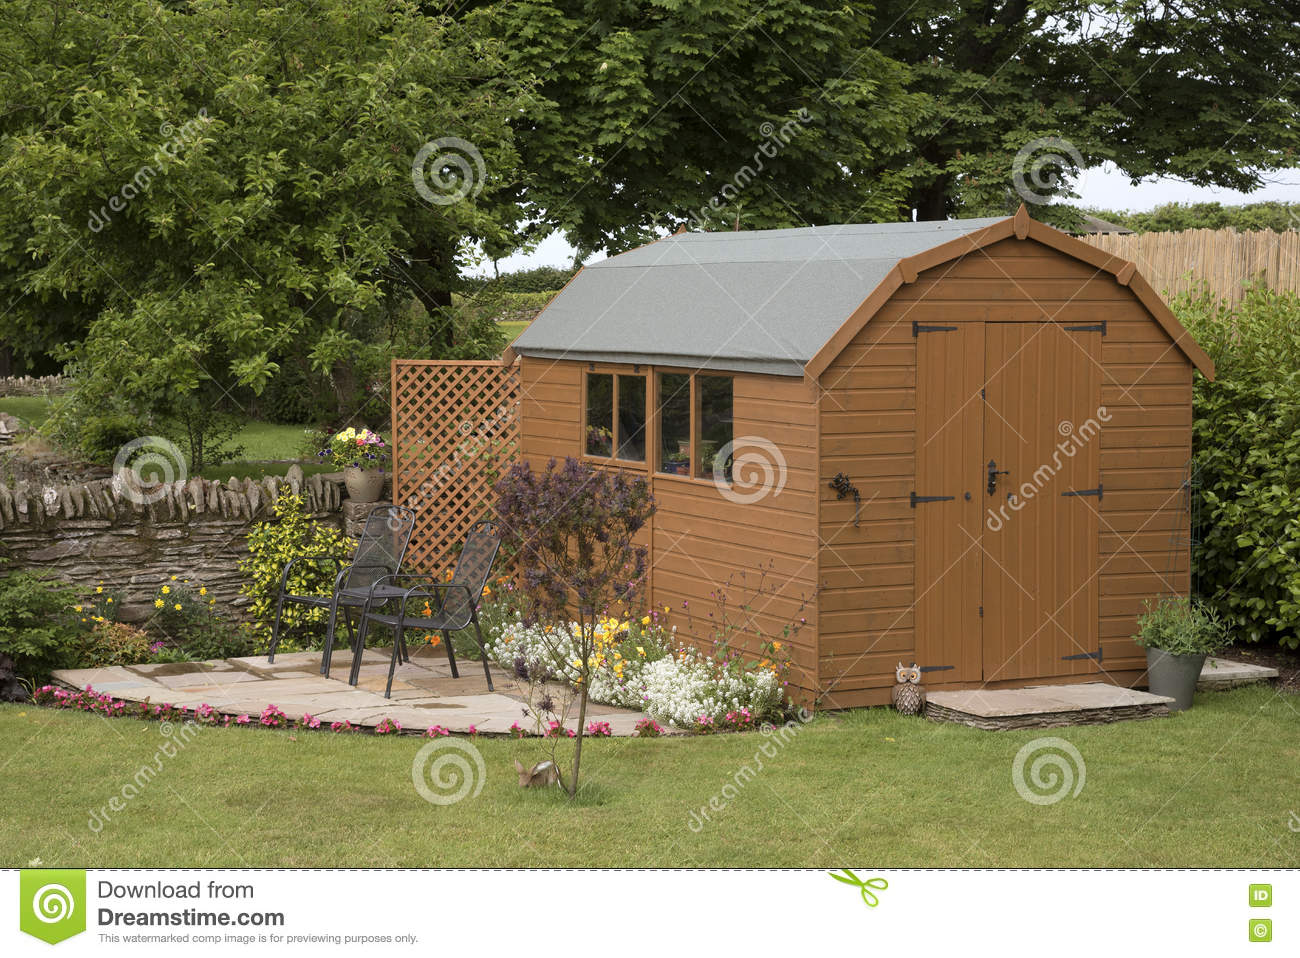 A Garden Shed And Small Patio Stock Photo - Image of plants, double ...